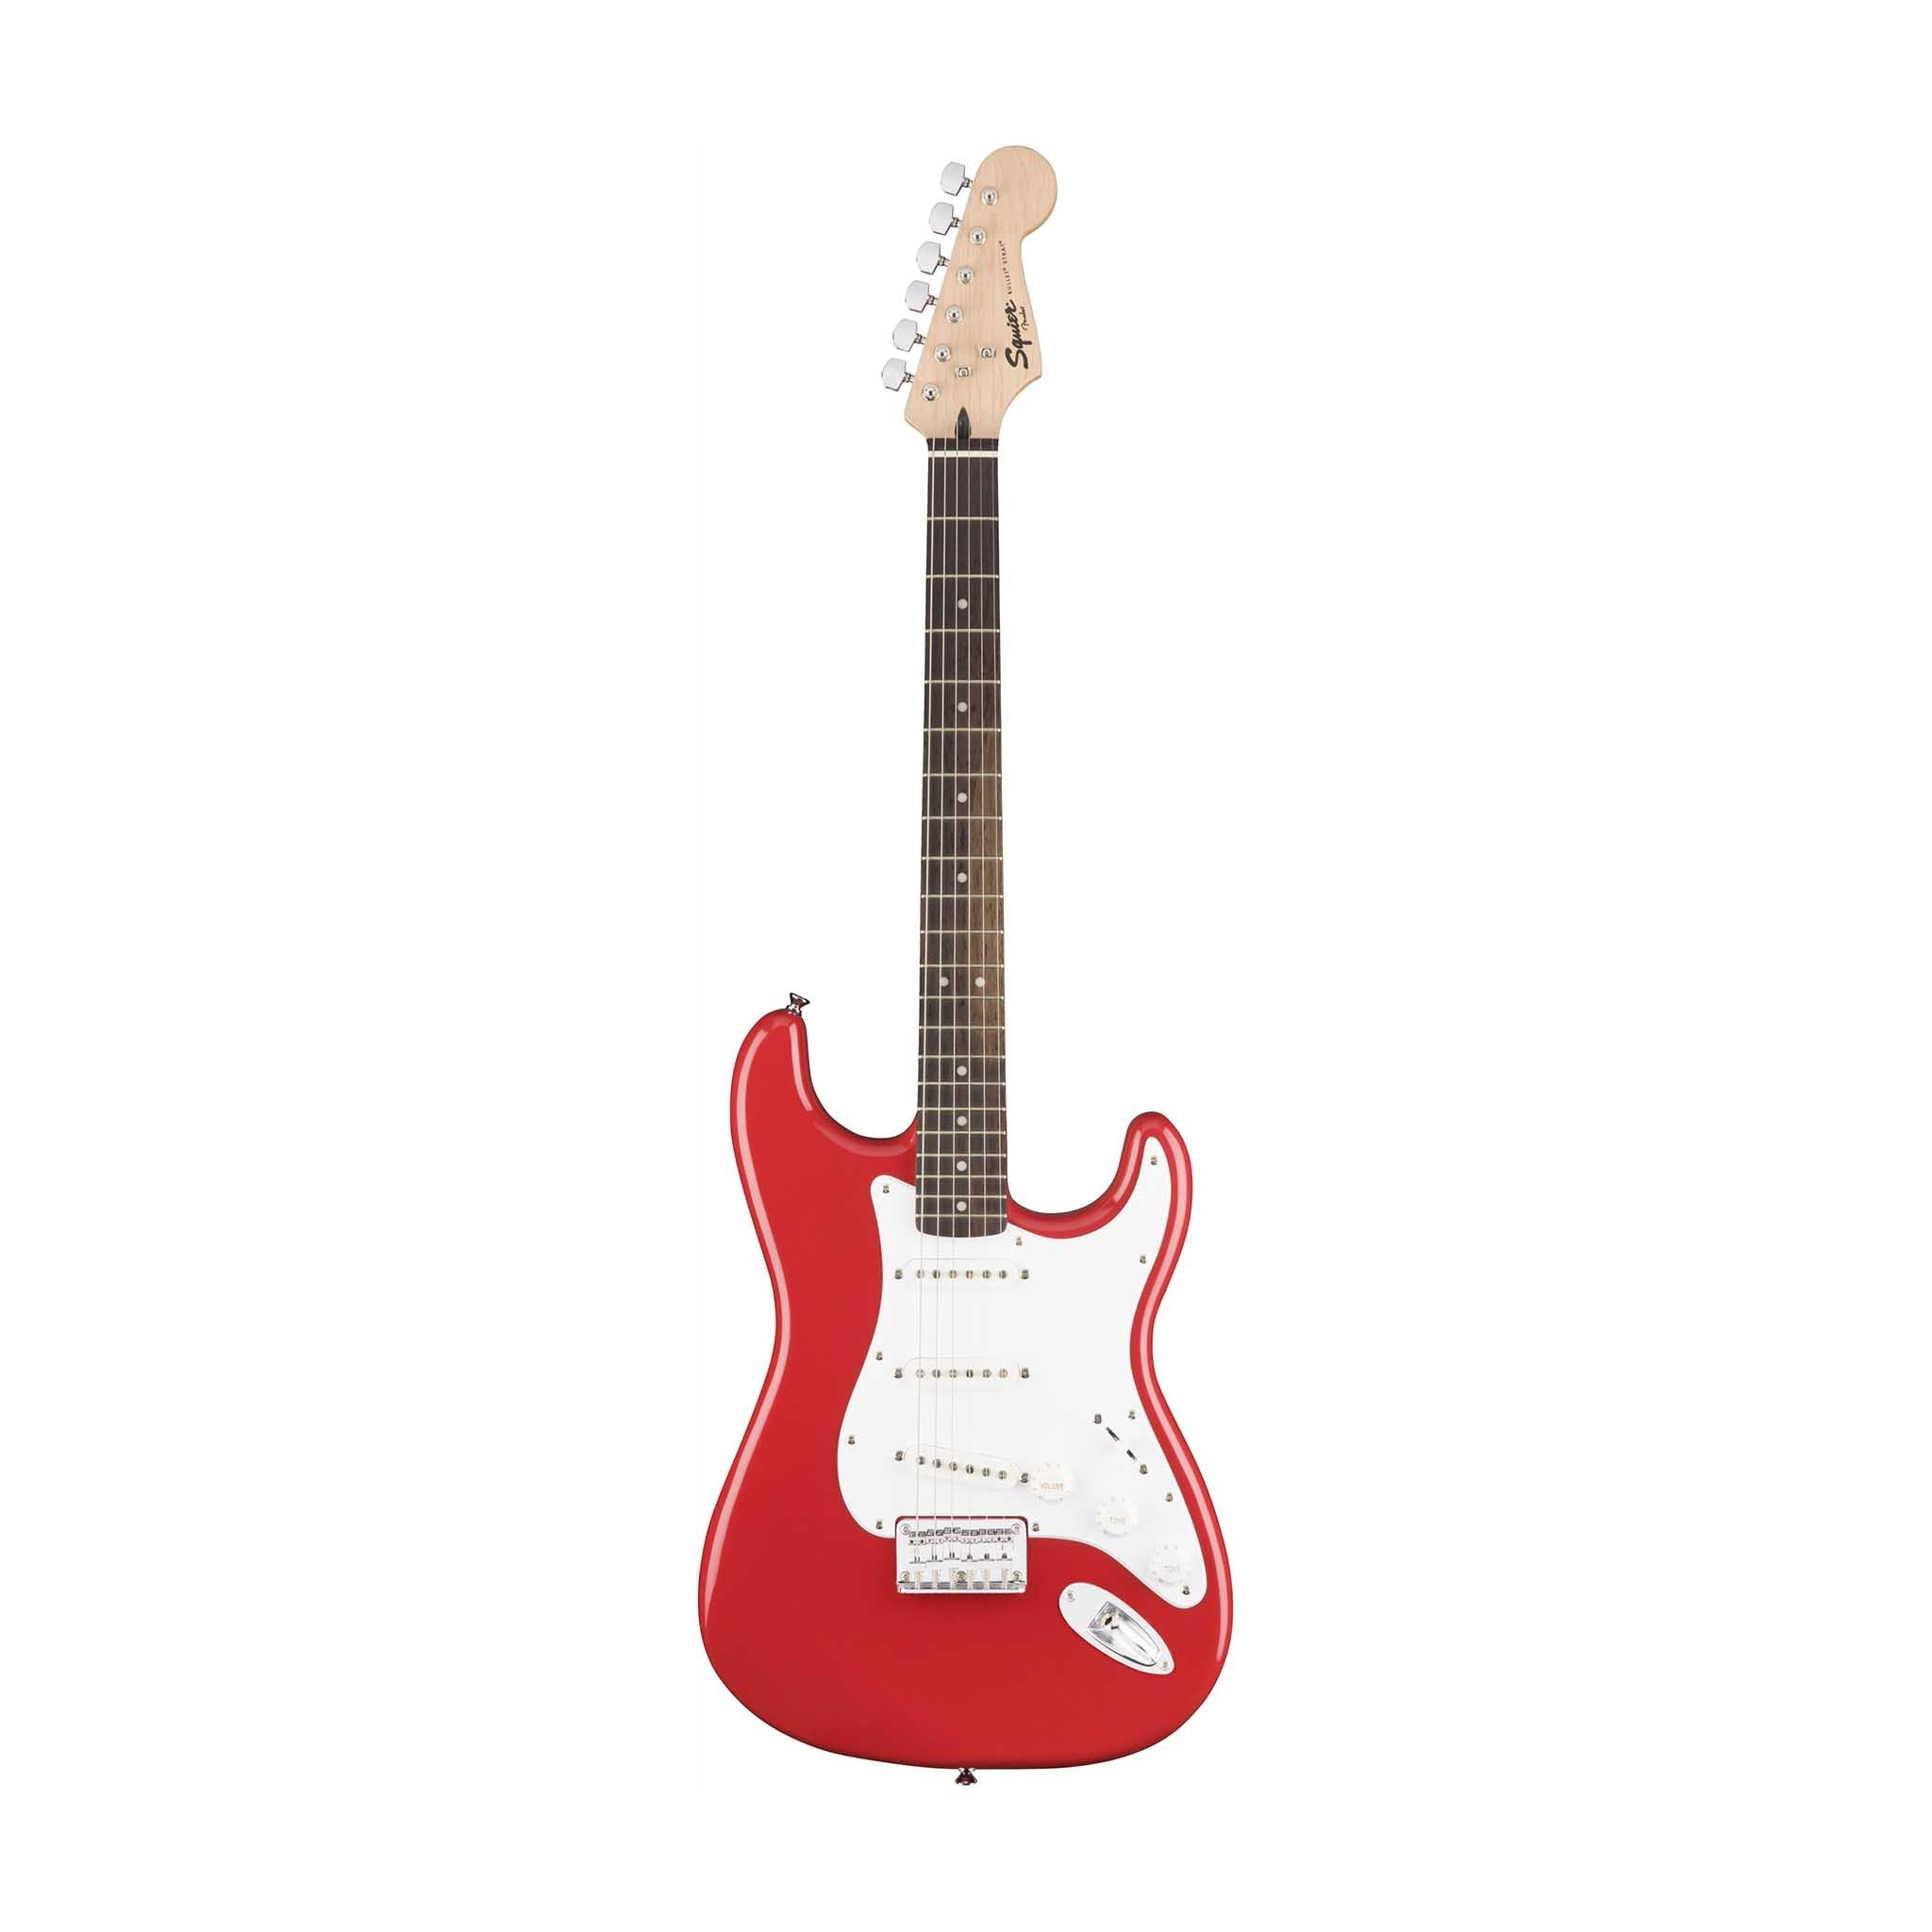 Squier Bullet Stratocaster Hardtail Electric Guitar, Rosewood FB